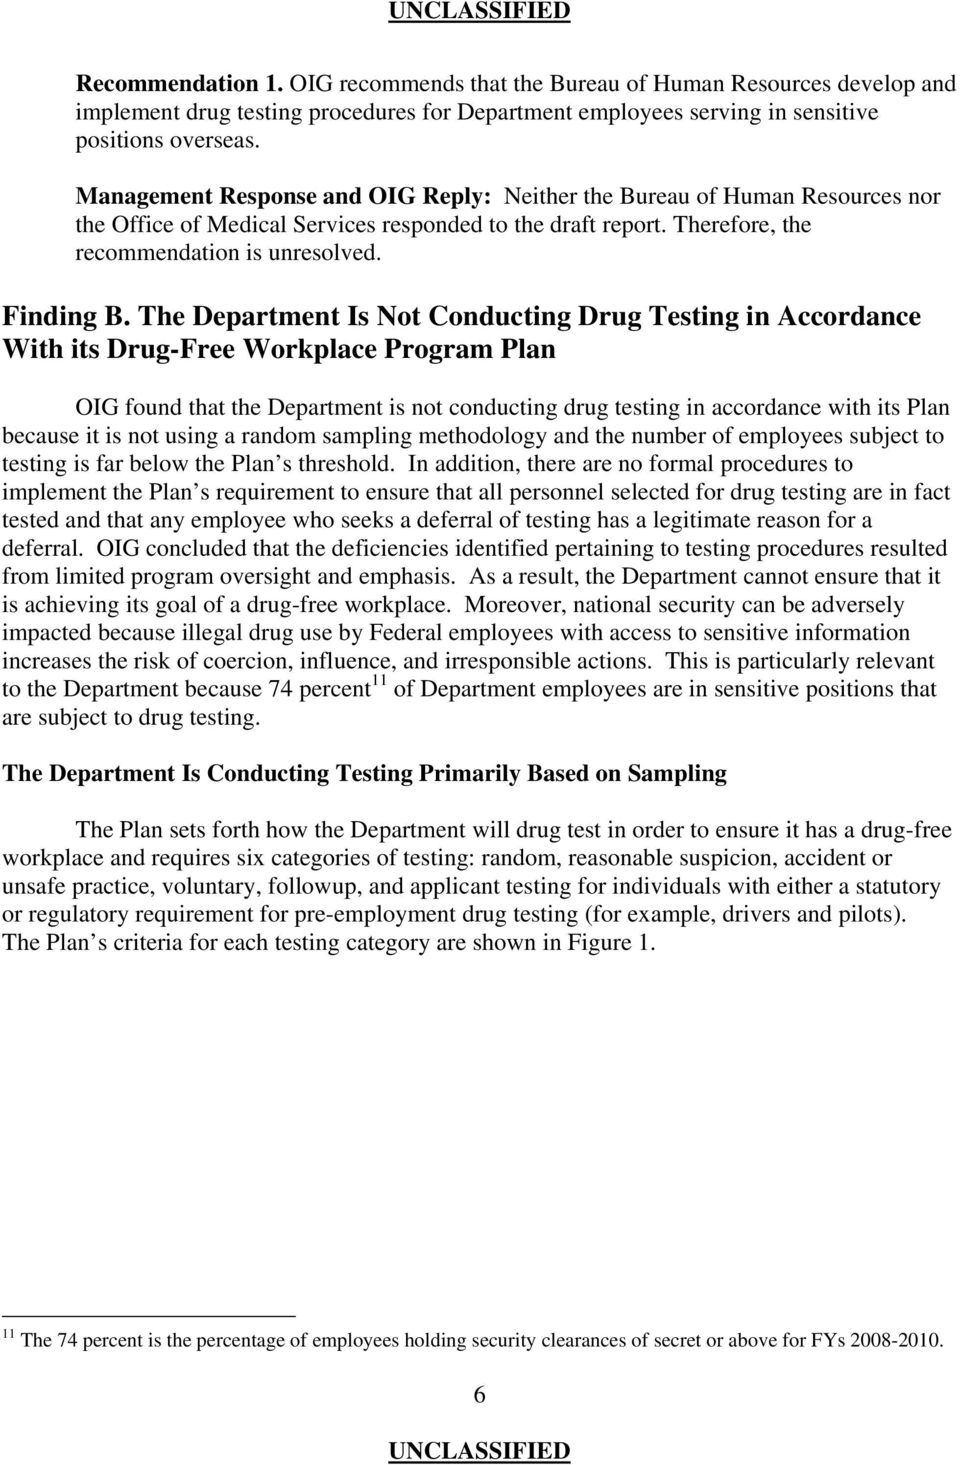 The Department Is Not Conducting Drug Testing in Accordance With its Drug-Free Workplace Program Plan OIG found that the Department is not conducting drug testing in accordance with its Plan because